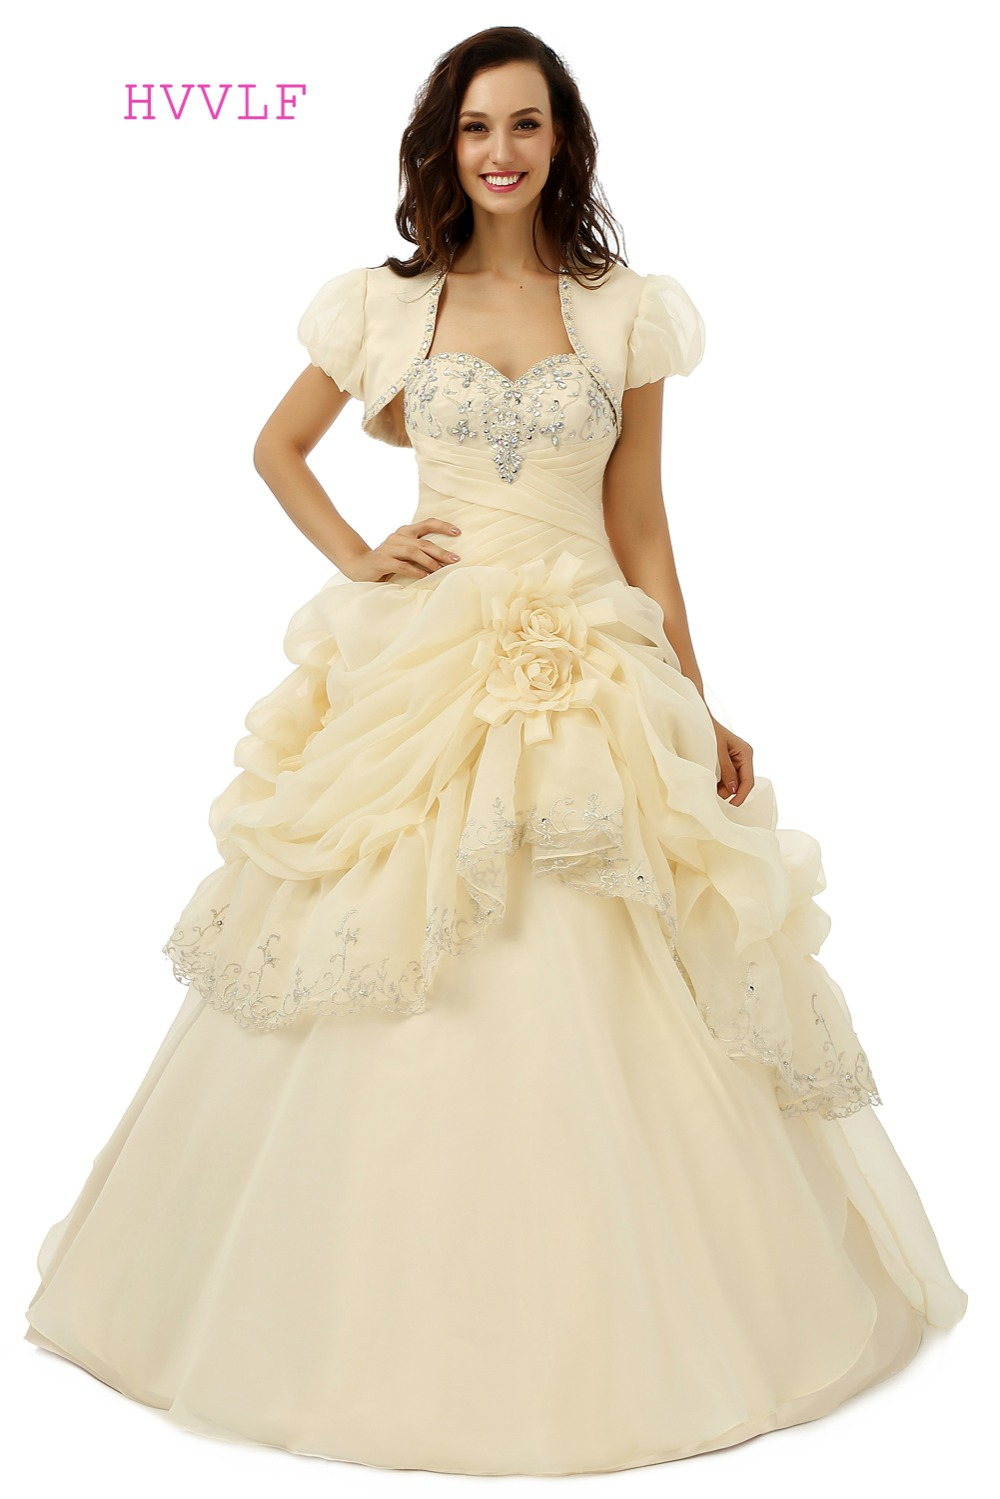 With Jacket 2018 Quinceanera Dresses Ball Gown Sweetheart Organza Gold Pleated Flowers Beaded Crystals Cheap Sweet 16 Dresses